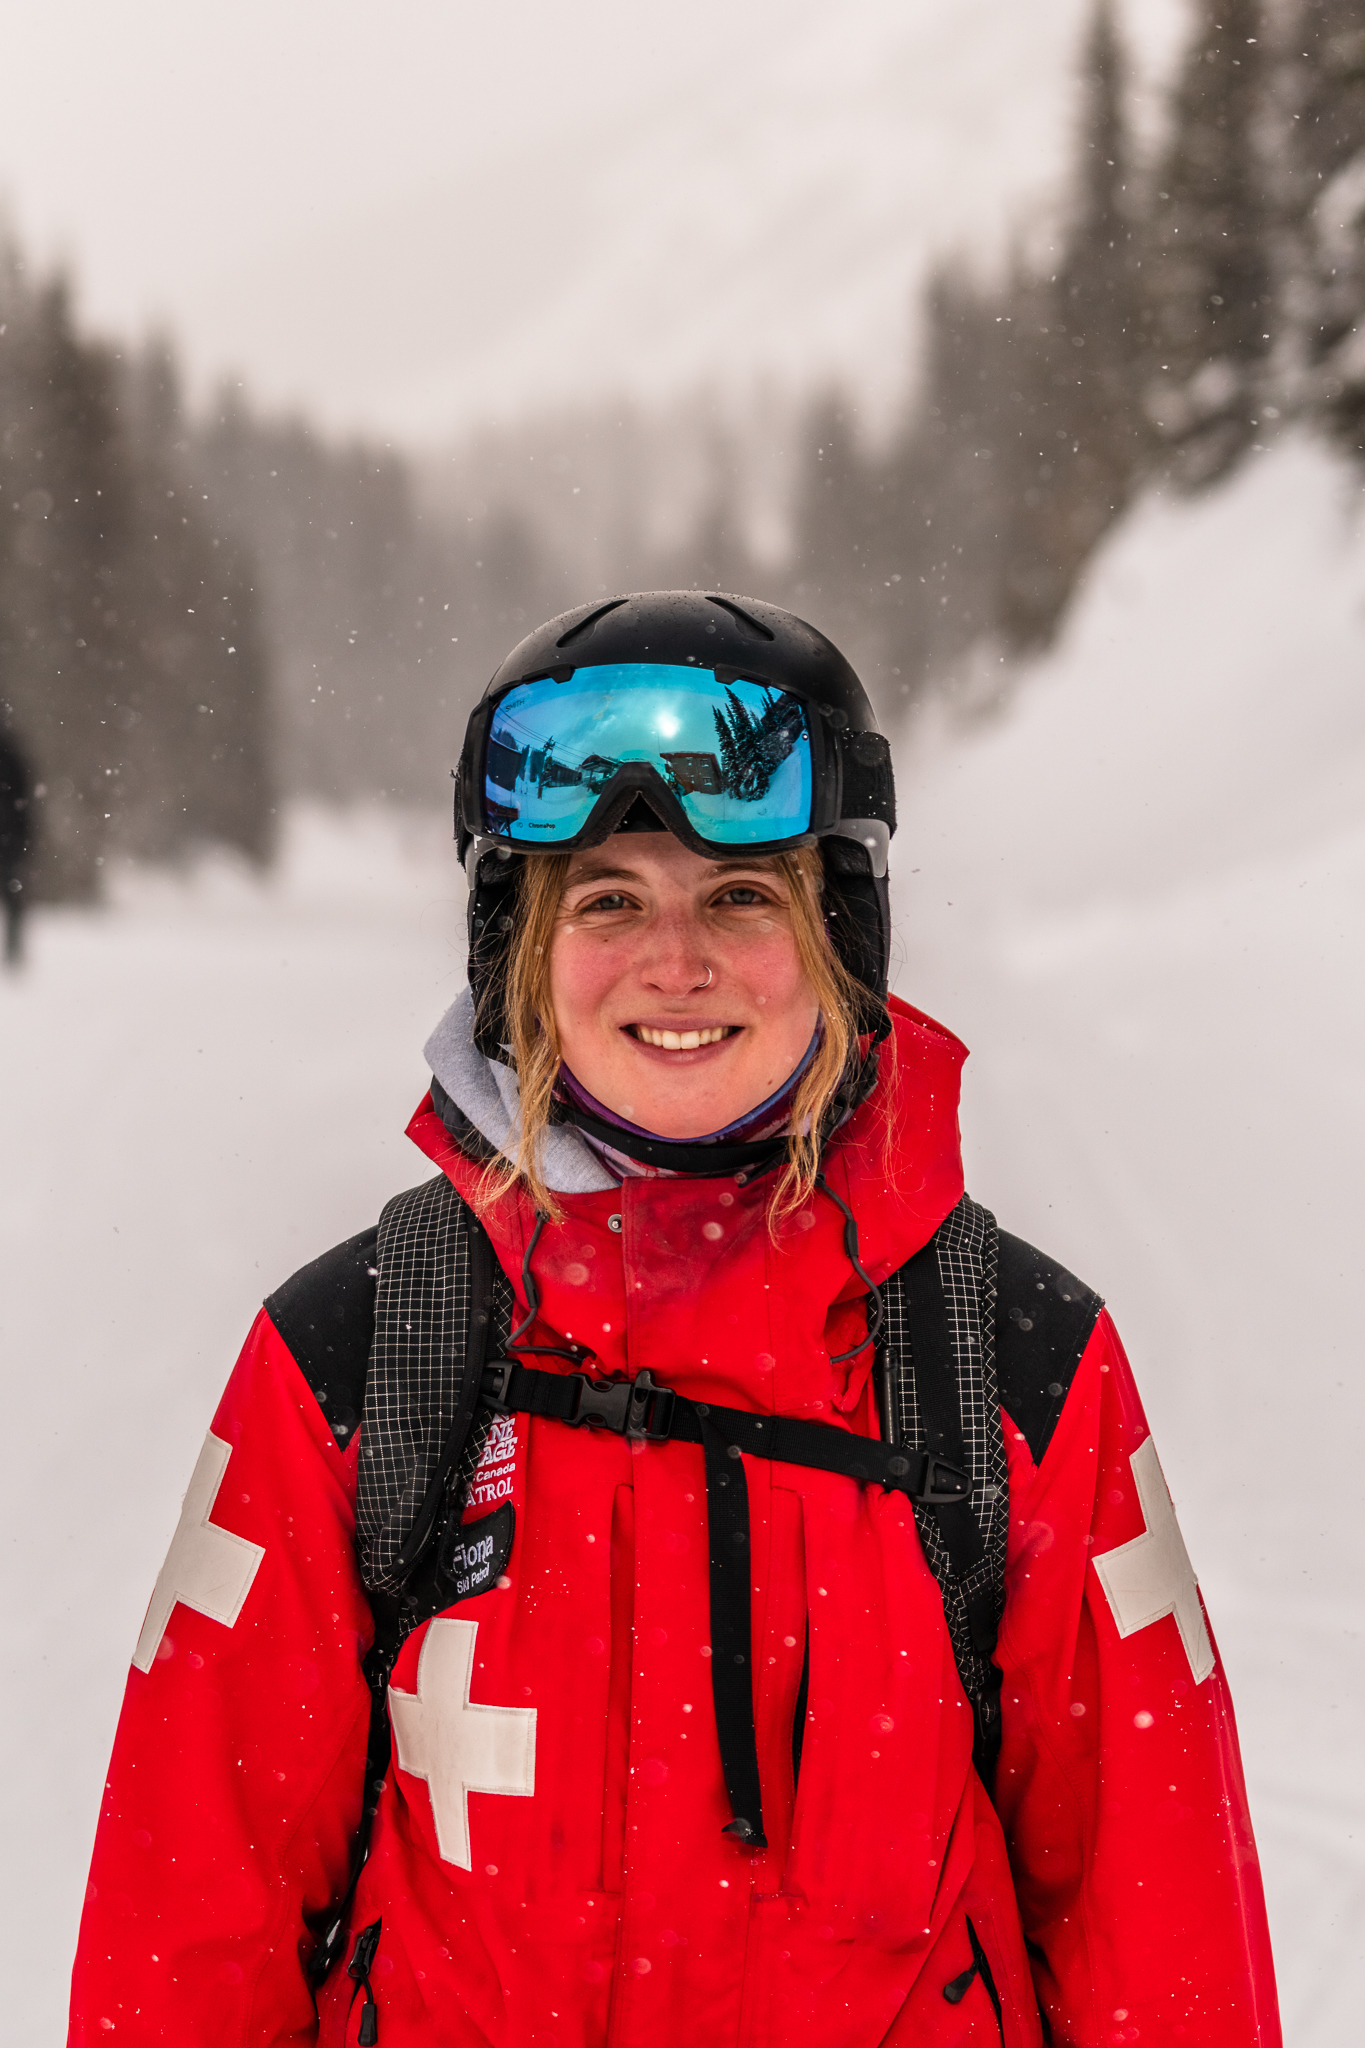 01 - MARCH 4th, 2020 - FIONA, SKI PATROL, WOMENS DAY, DIVIDE, WHITE OUT 04.jpg